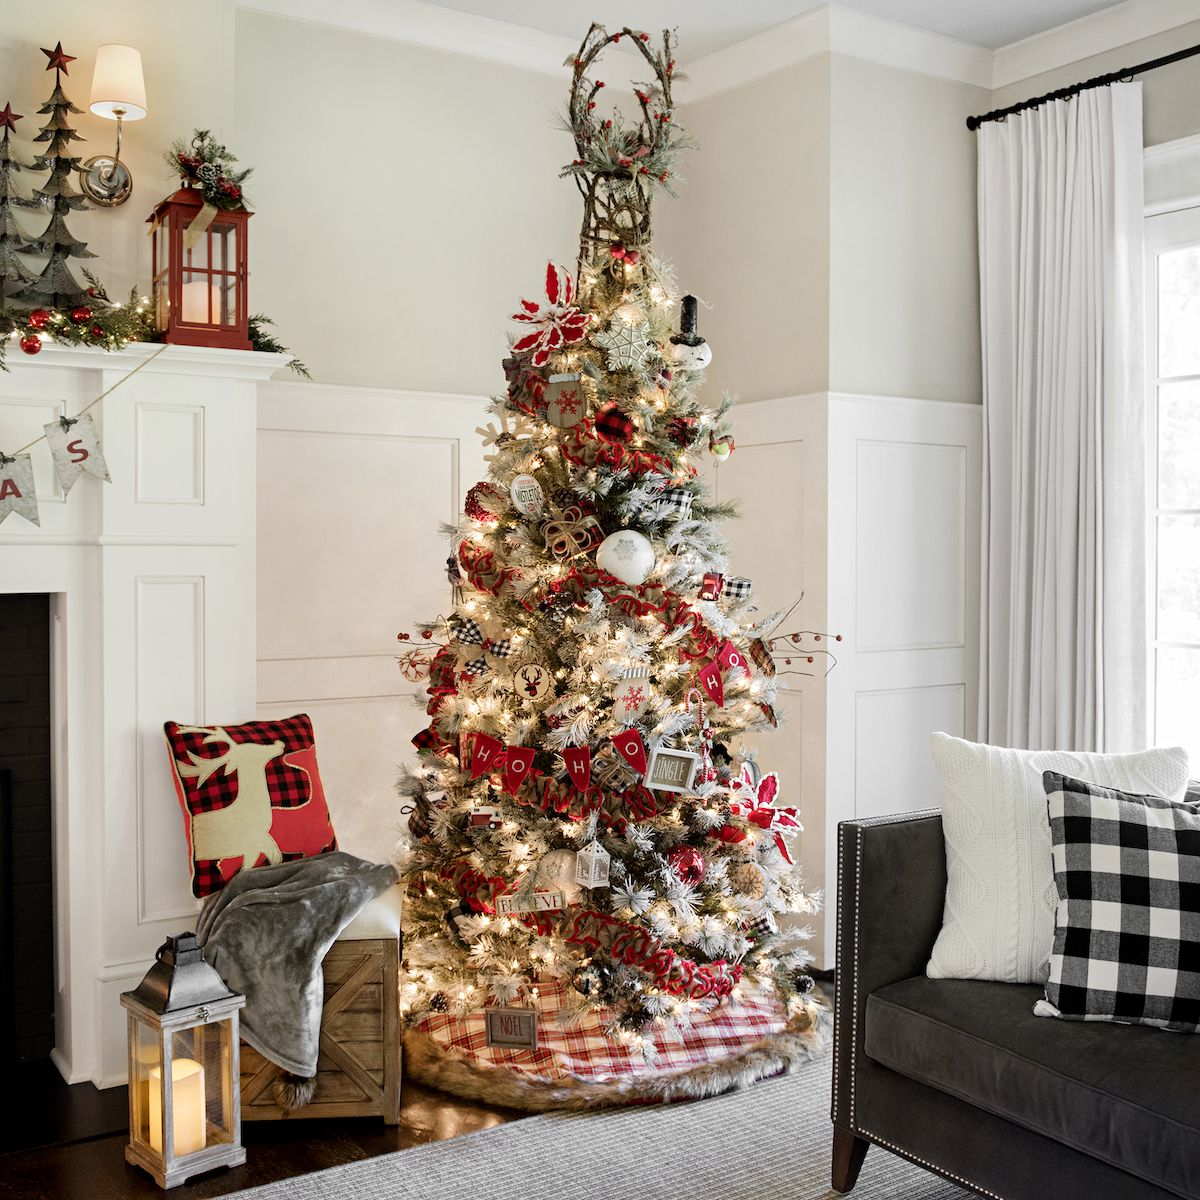 Style Your Christmas Corner With Our Cedar Lane Collection The